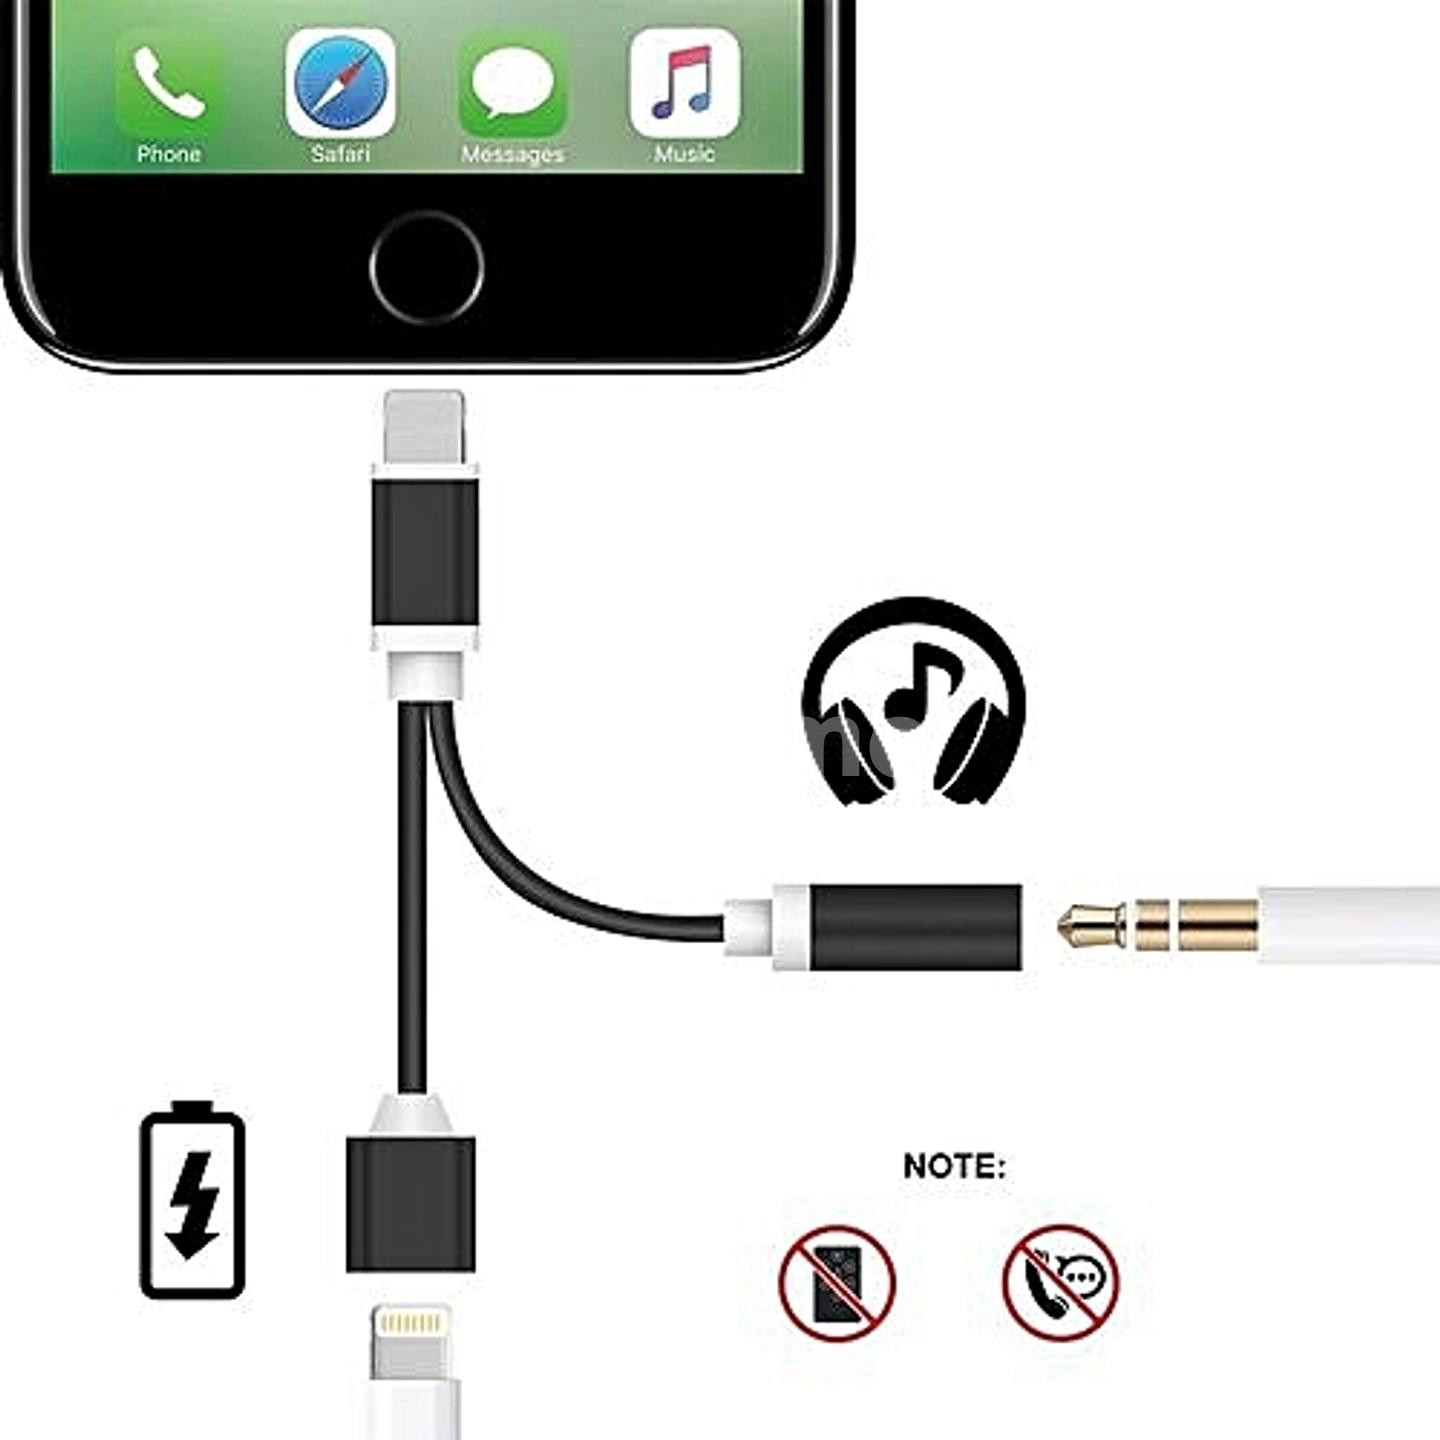 iPhone Lightning to 3 5mm Audio Charge Earphone Jack Adapter Cable- Sprtjoy  2 in 1 Lightning Charging Port for the iPhone 7 7 Plus 6S 6 iPod iPad